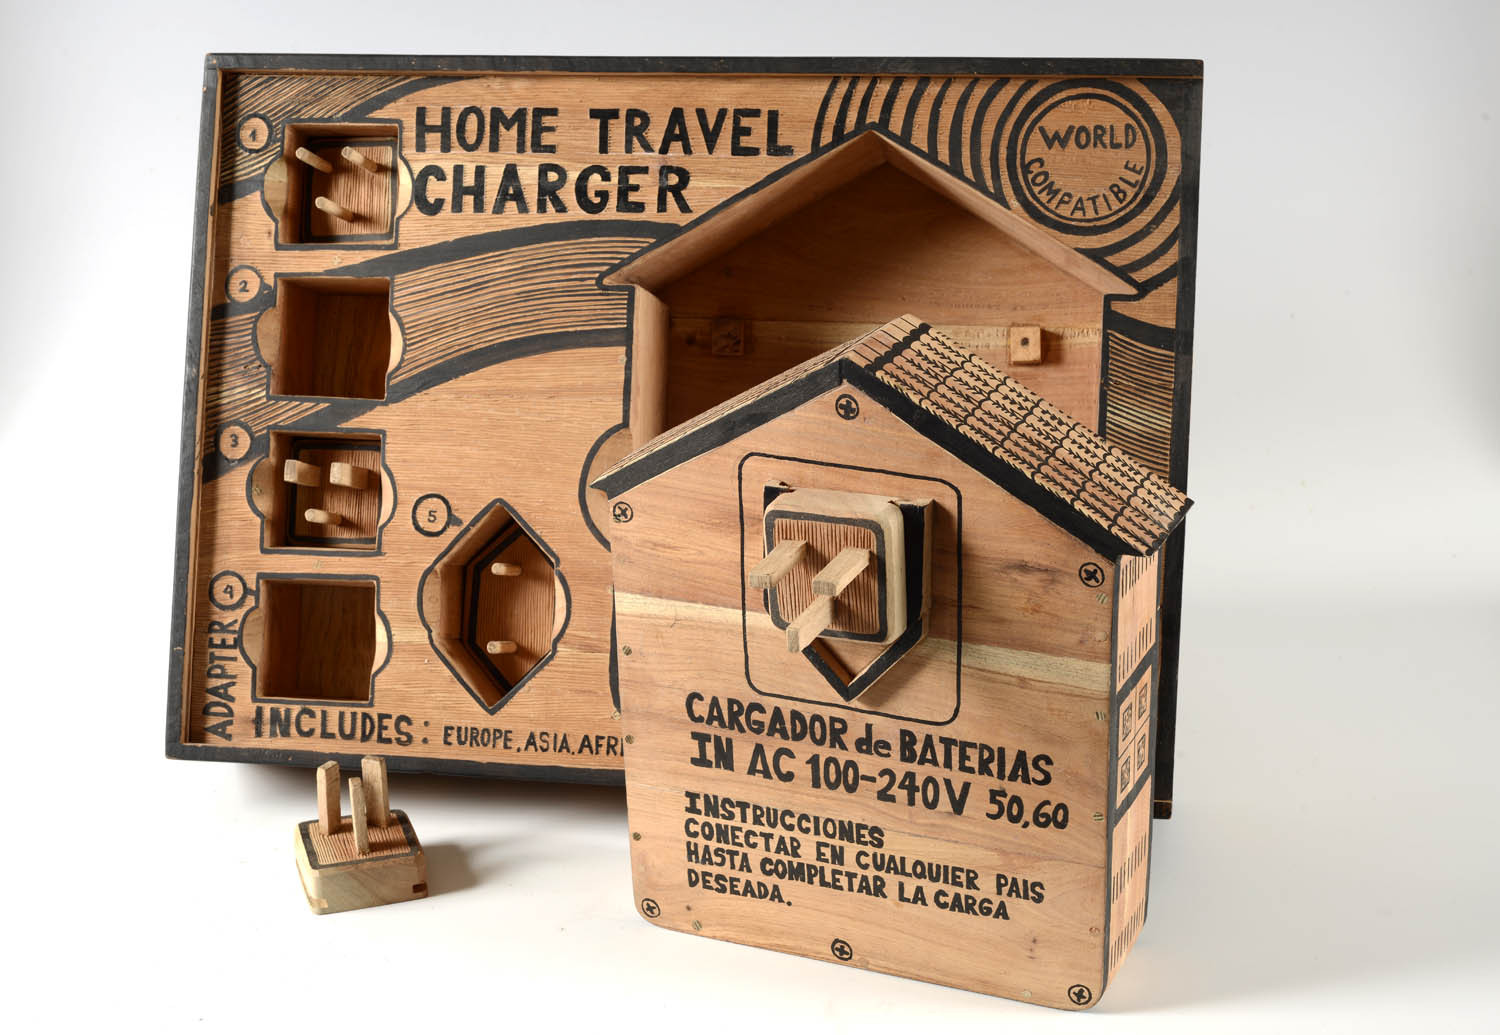 Abel Barroso_HOME TRAVEL CHARGER_Hand carved wood sculpture, woodcut_16 x 22 x 11 inches